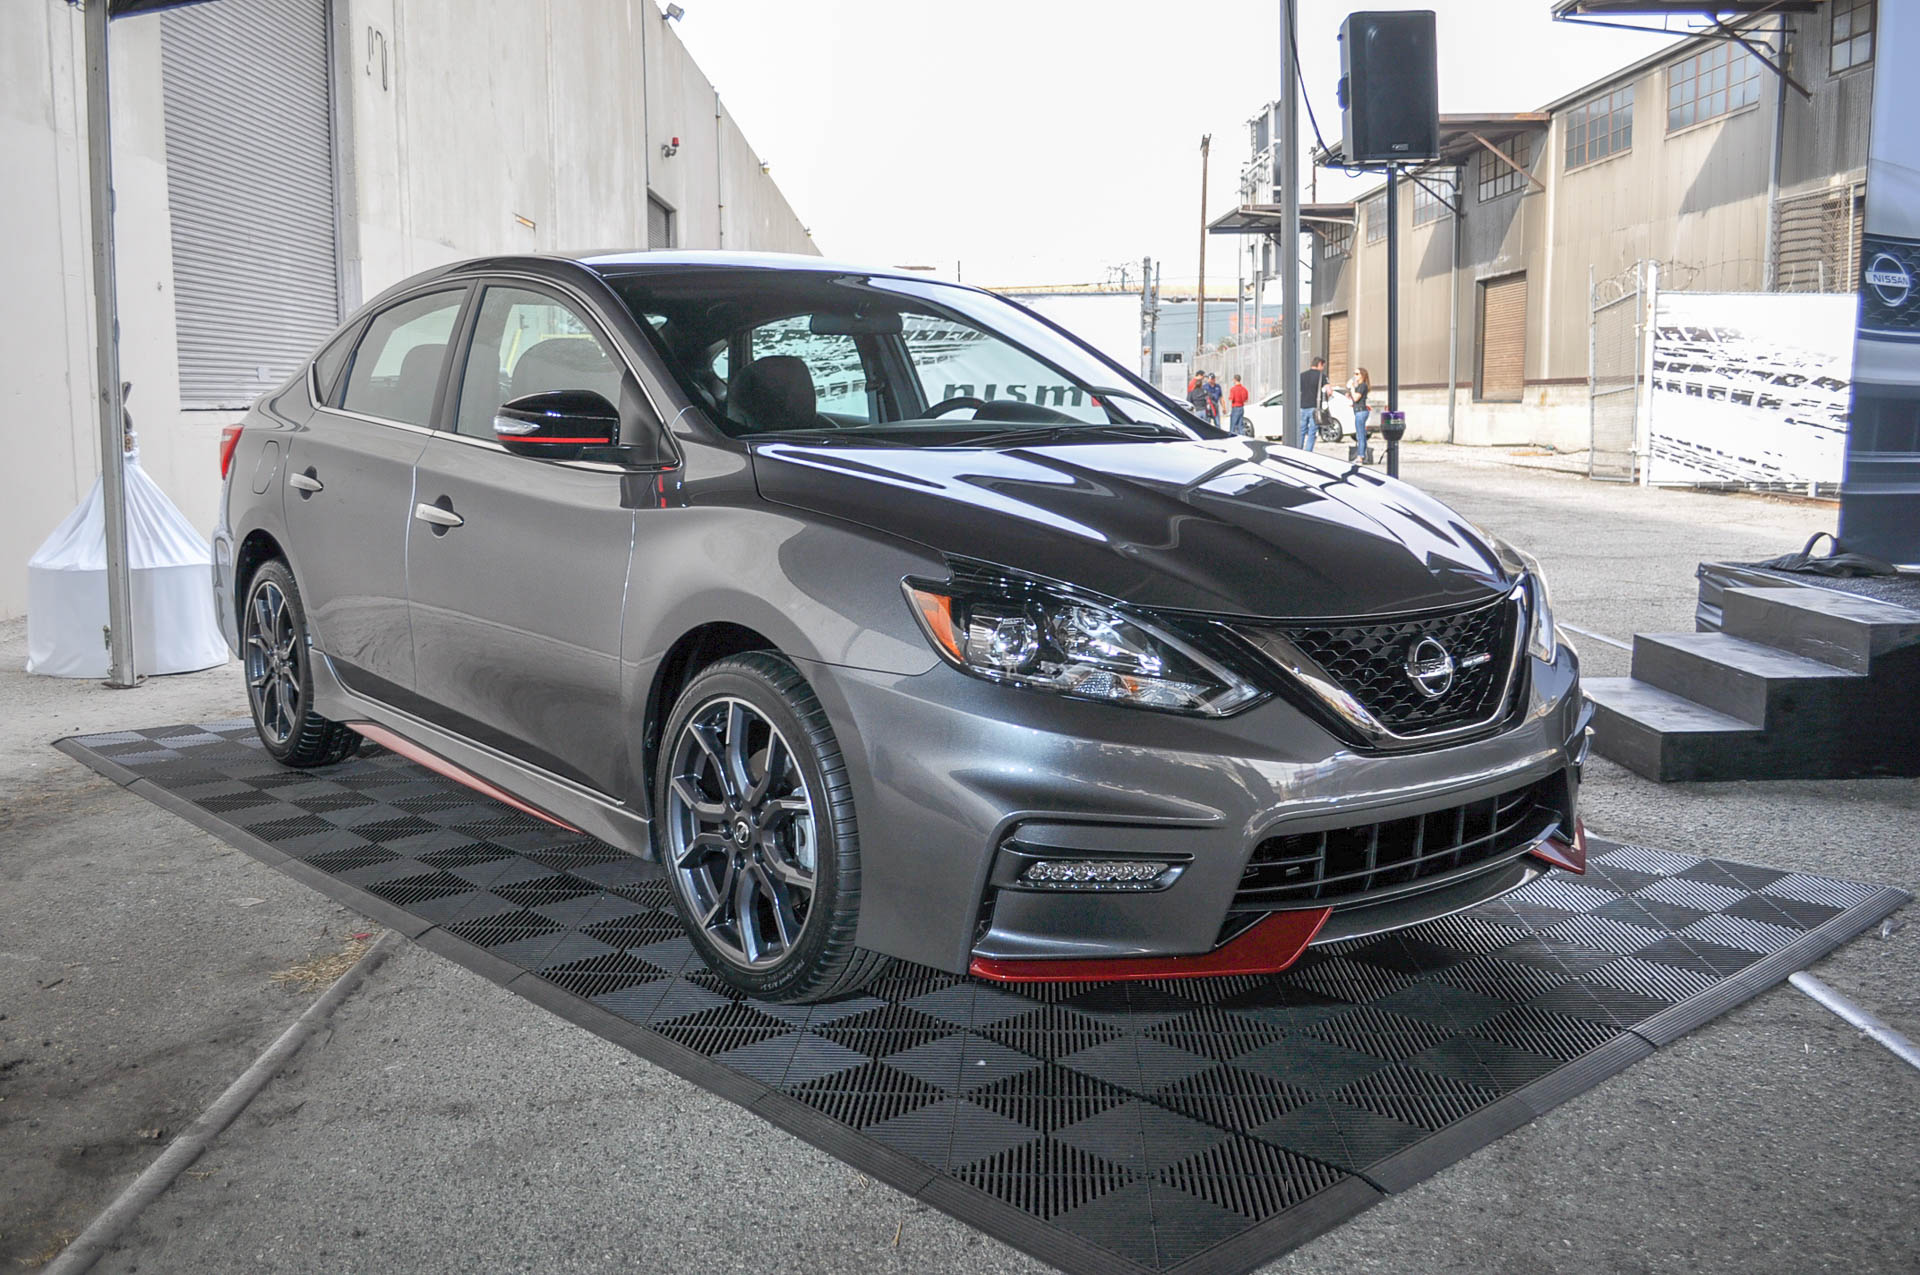 2019 Nissan Sentra >> 2017 Nissan Sentra Nismo revealed at 2016 LA auto show